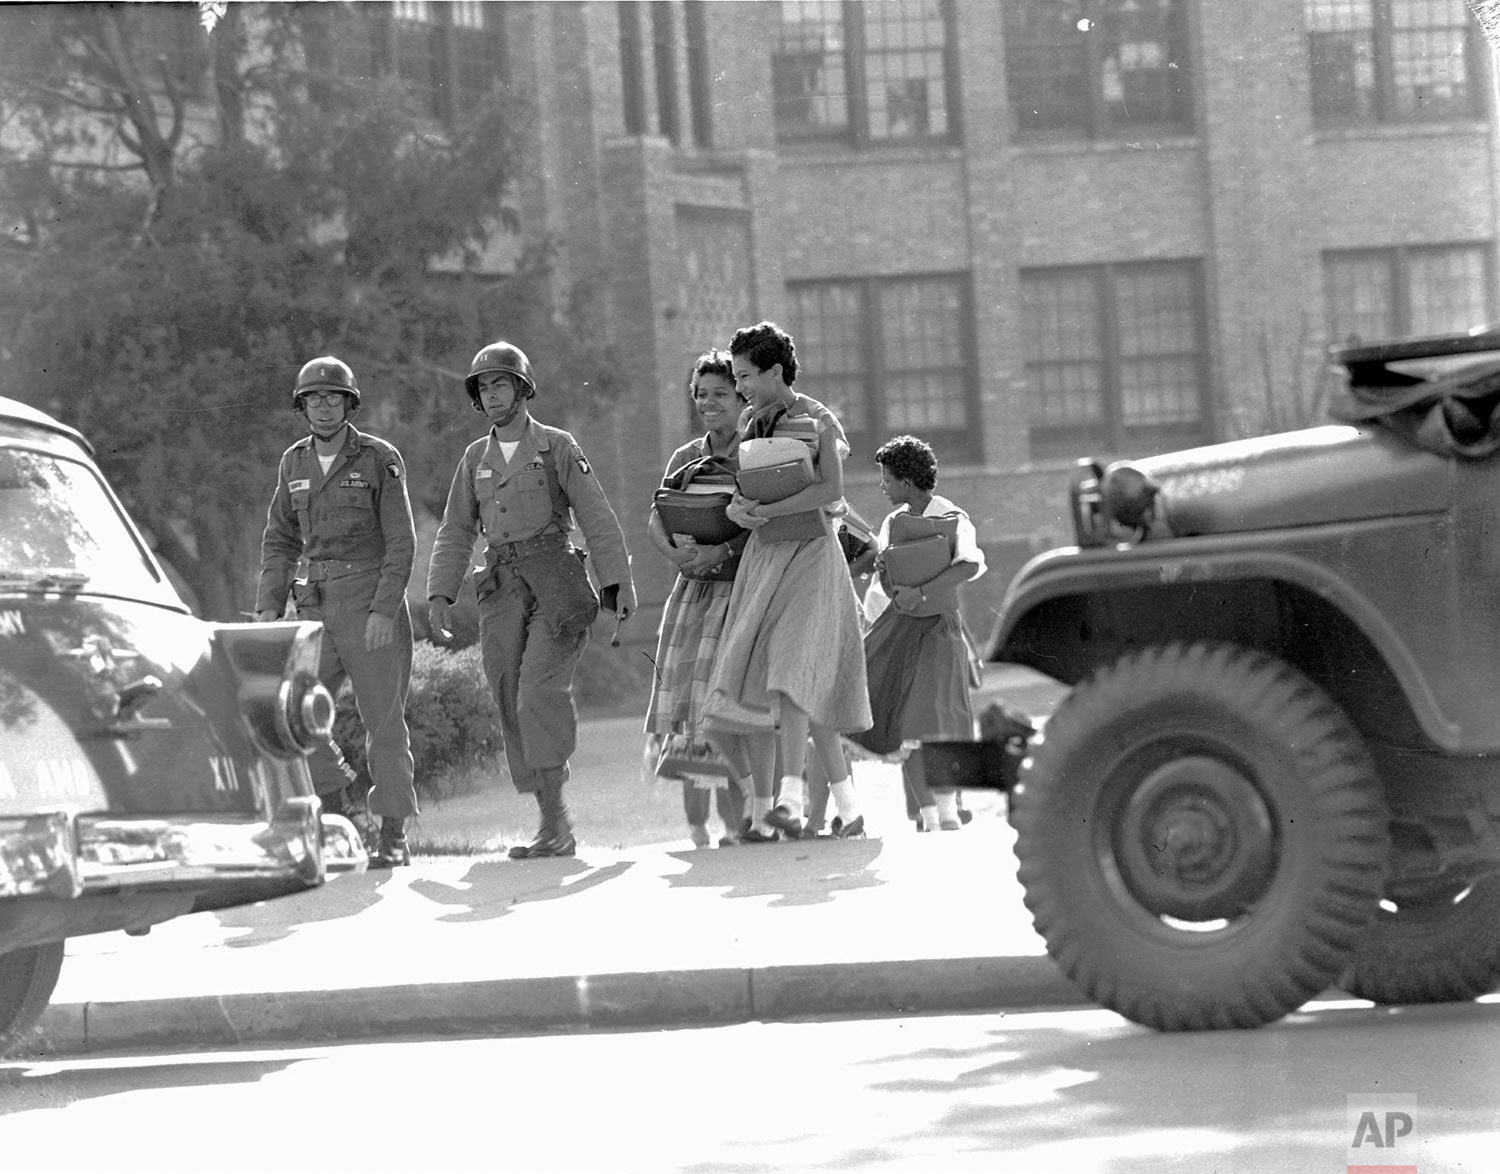 Two paratroop officers escort black students from Central High School in Little Rock, Ark., September 27, 1957.  School was closing for the weekend.  (AP Photo)